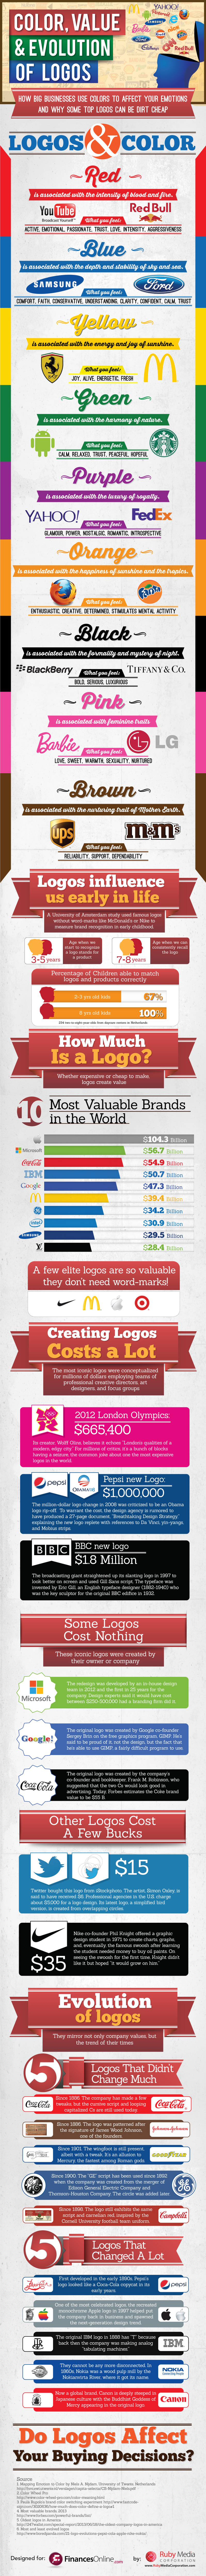 infographic-logo-color